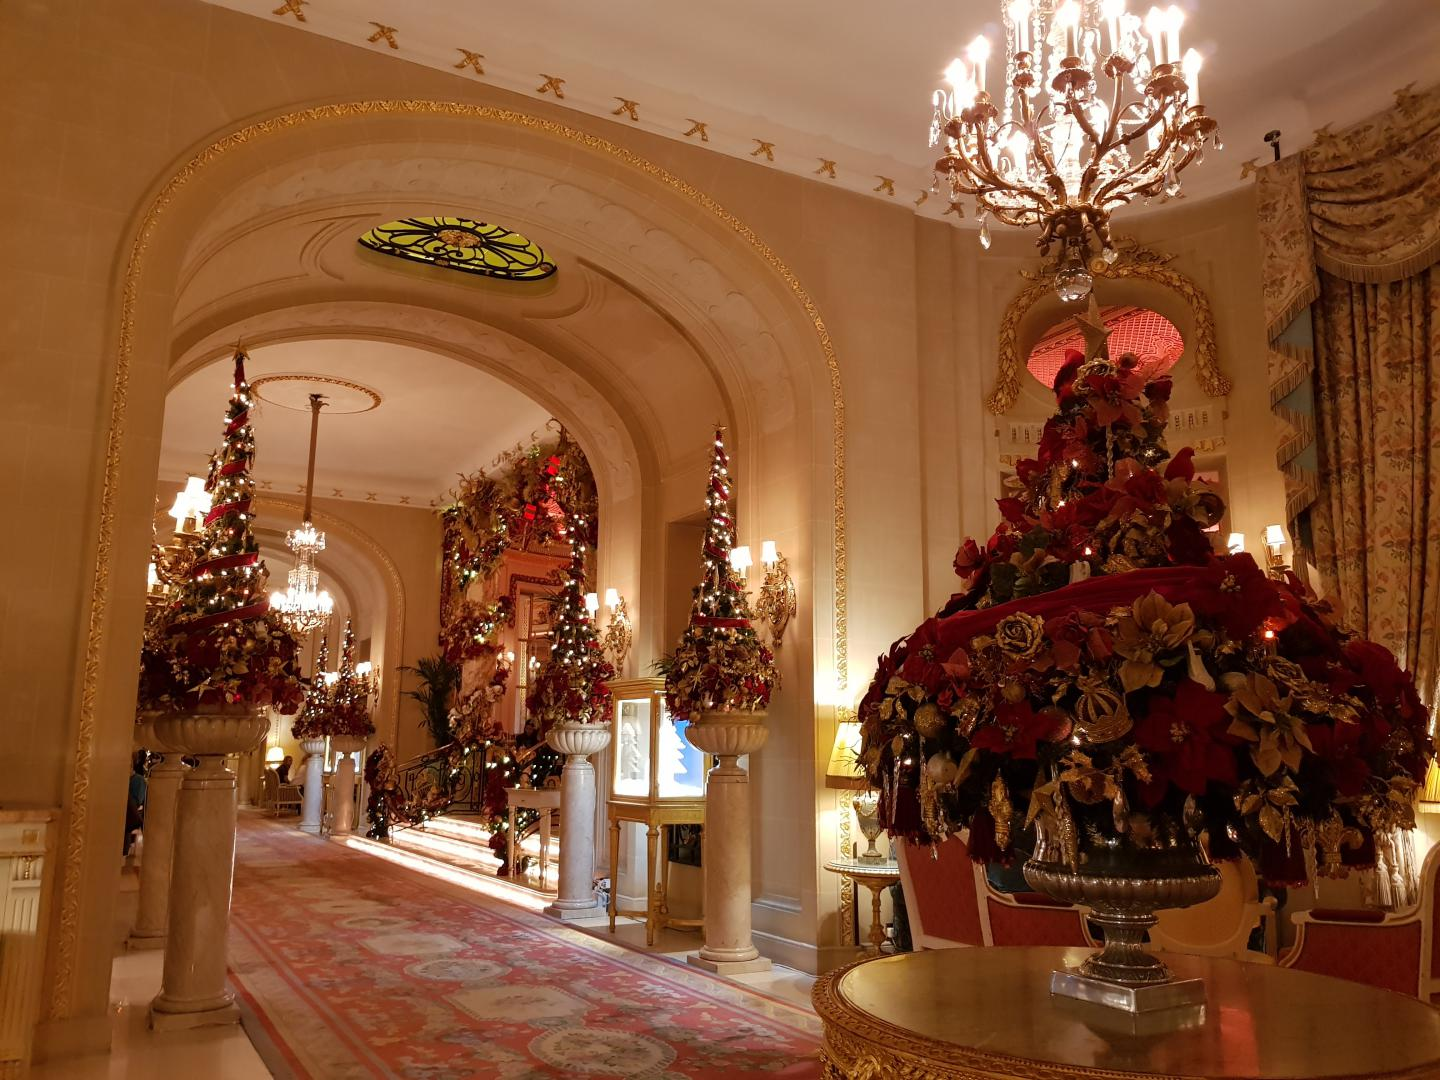 The interior of the Ritz at Christmastime